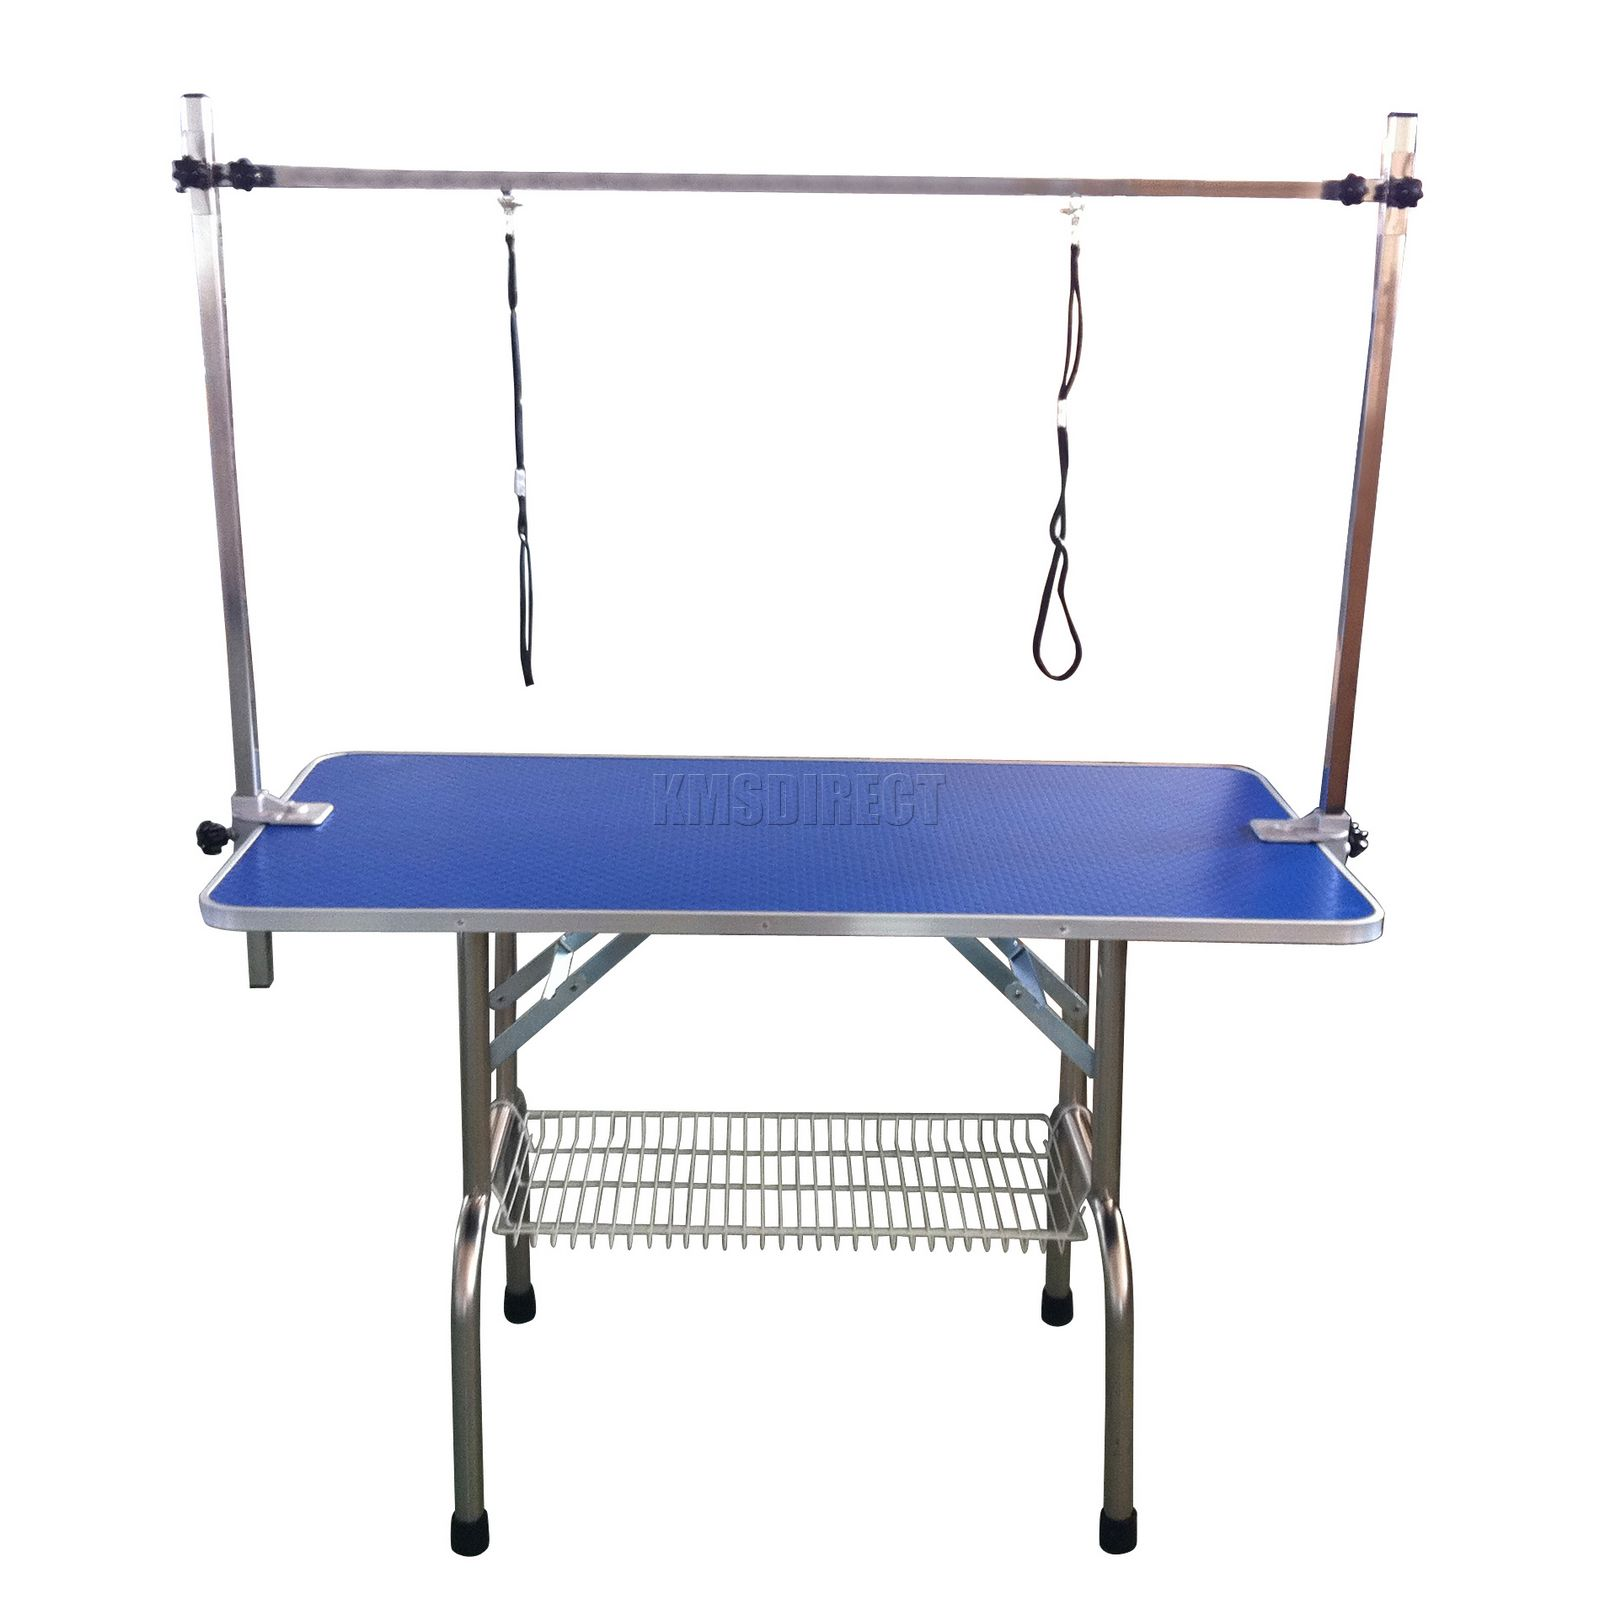 Adjustable Portable Dog Grooming Table Arm Noose 46